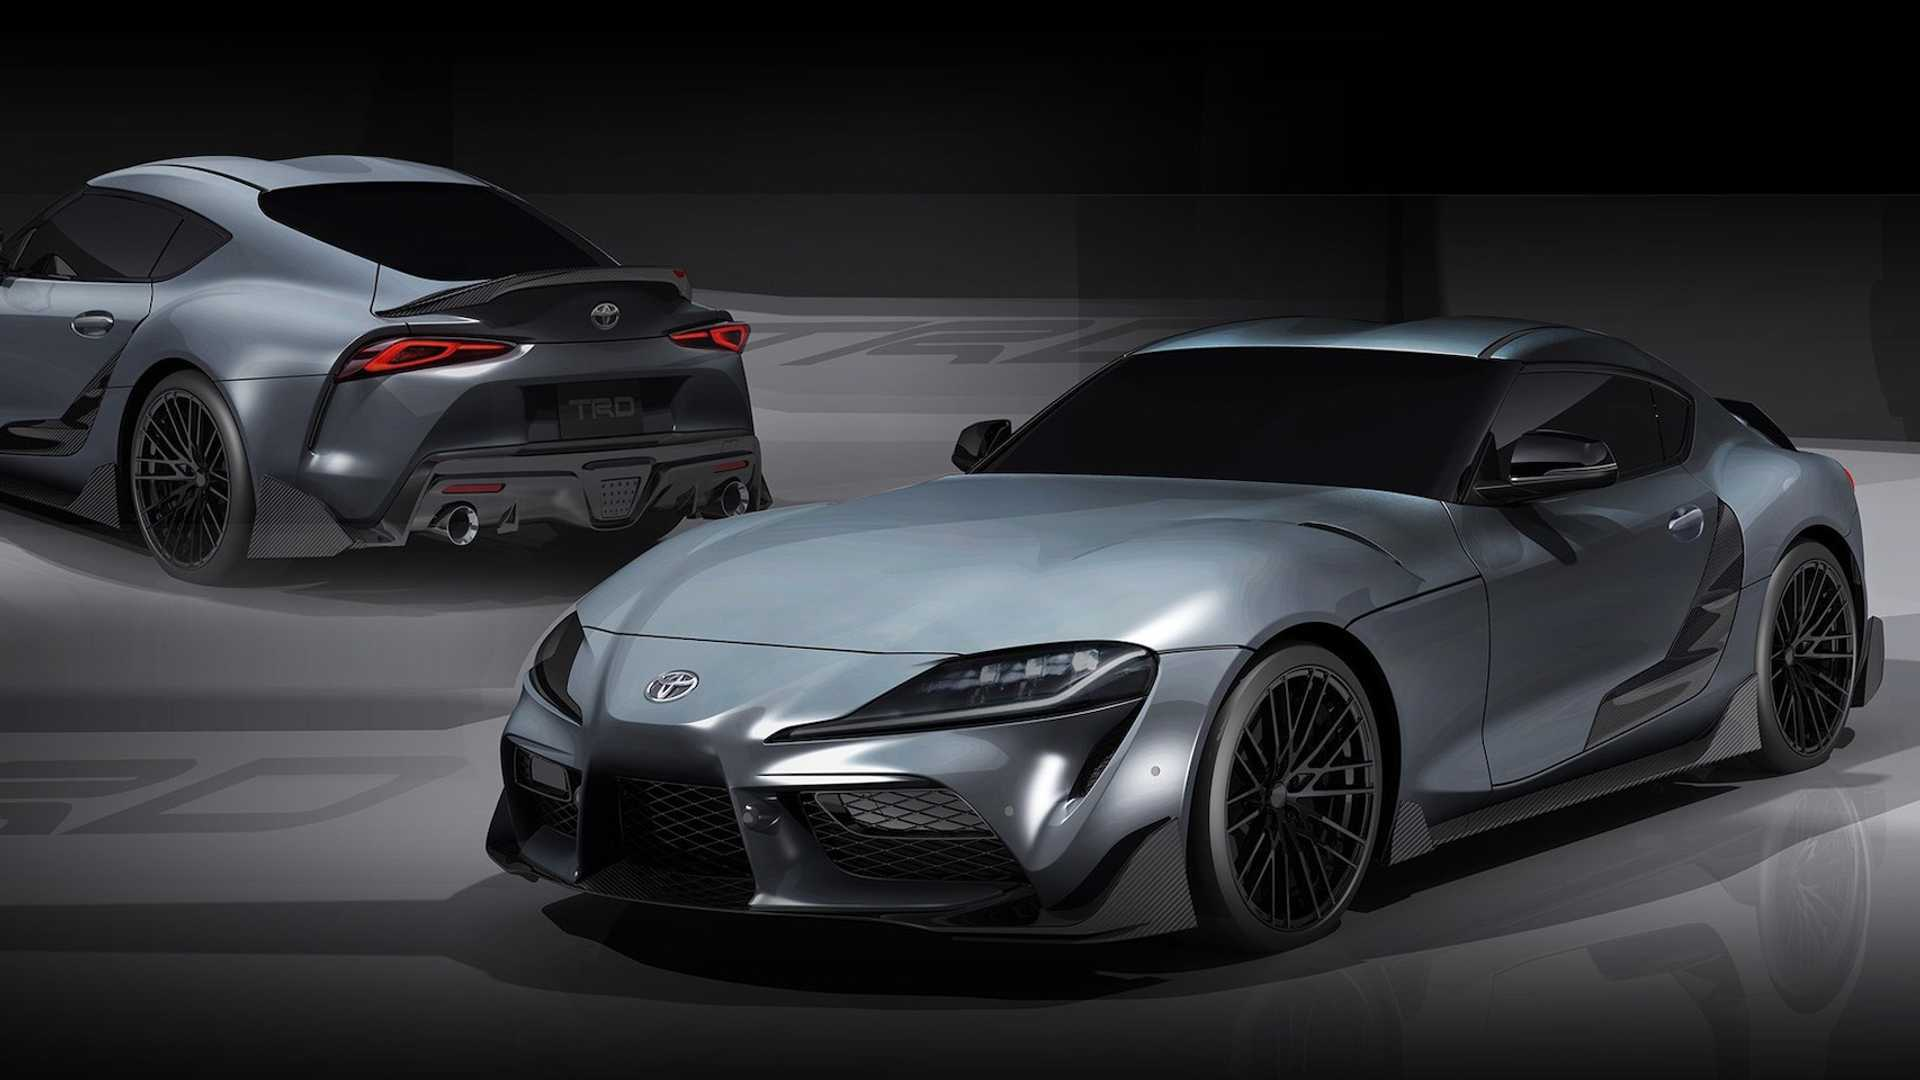 Toyota Supra TRD Concept Shows Its Racy Body On Camera